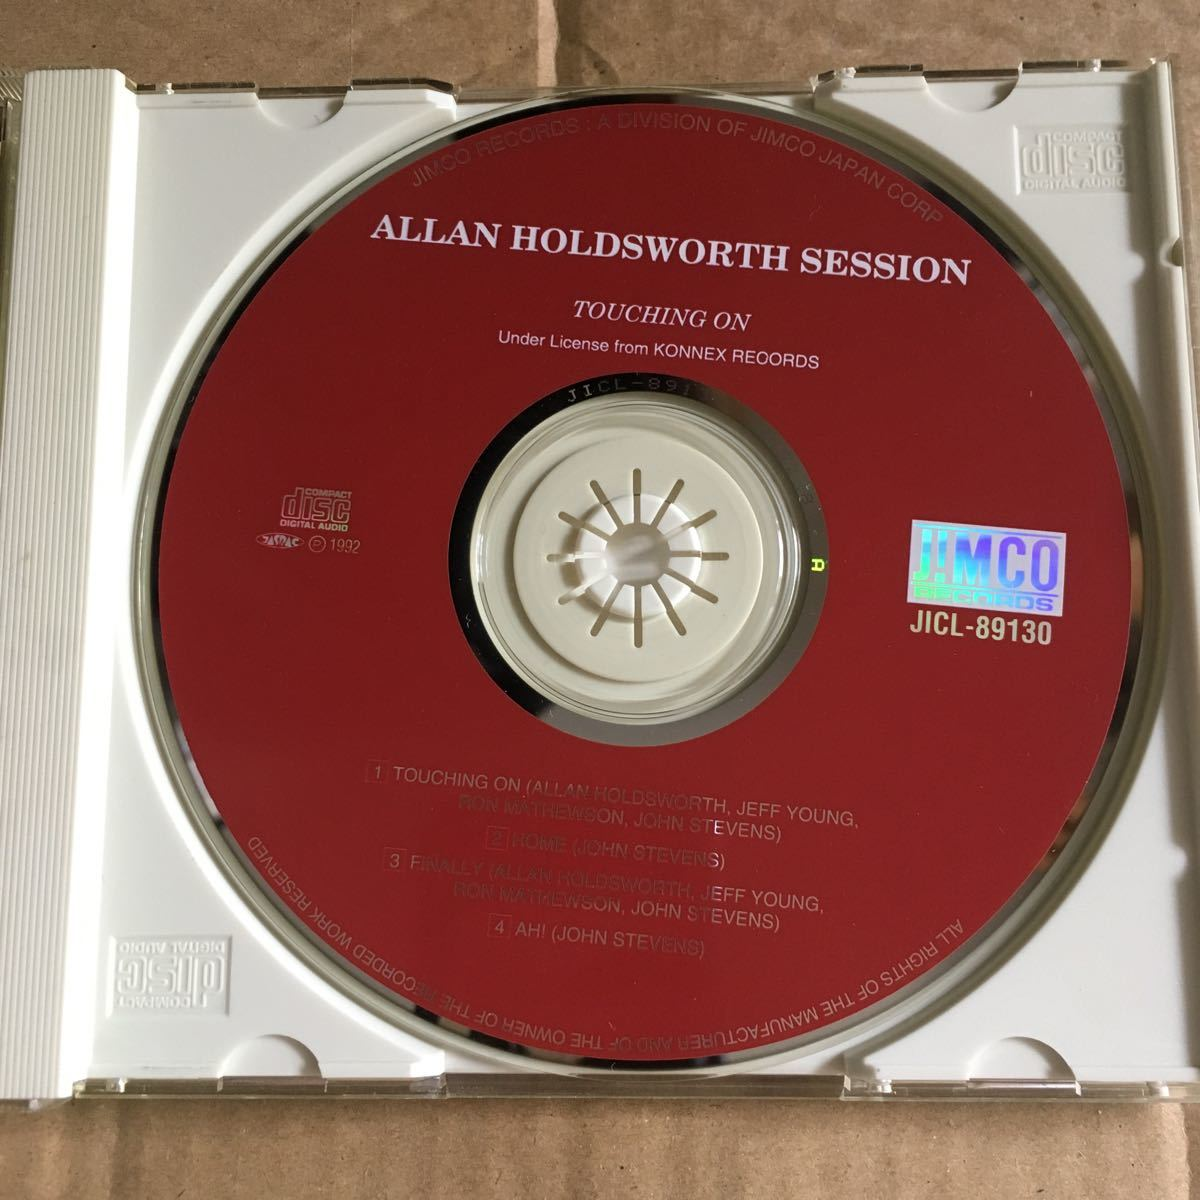 Allan Holdsworth - Touching On ('90) 帯付 ジムコ_画像2